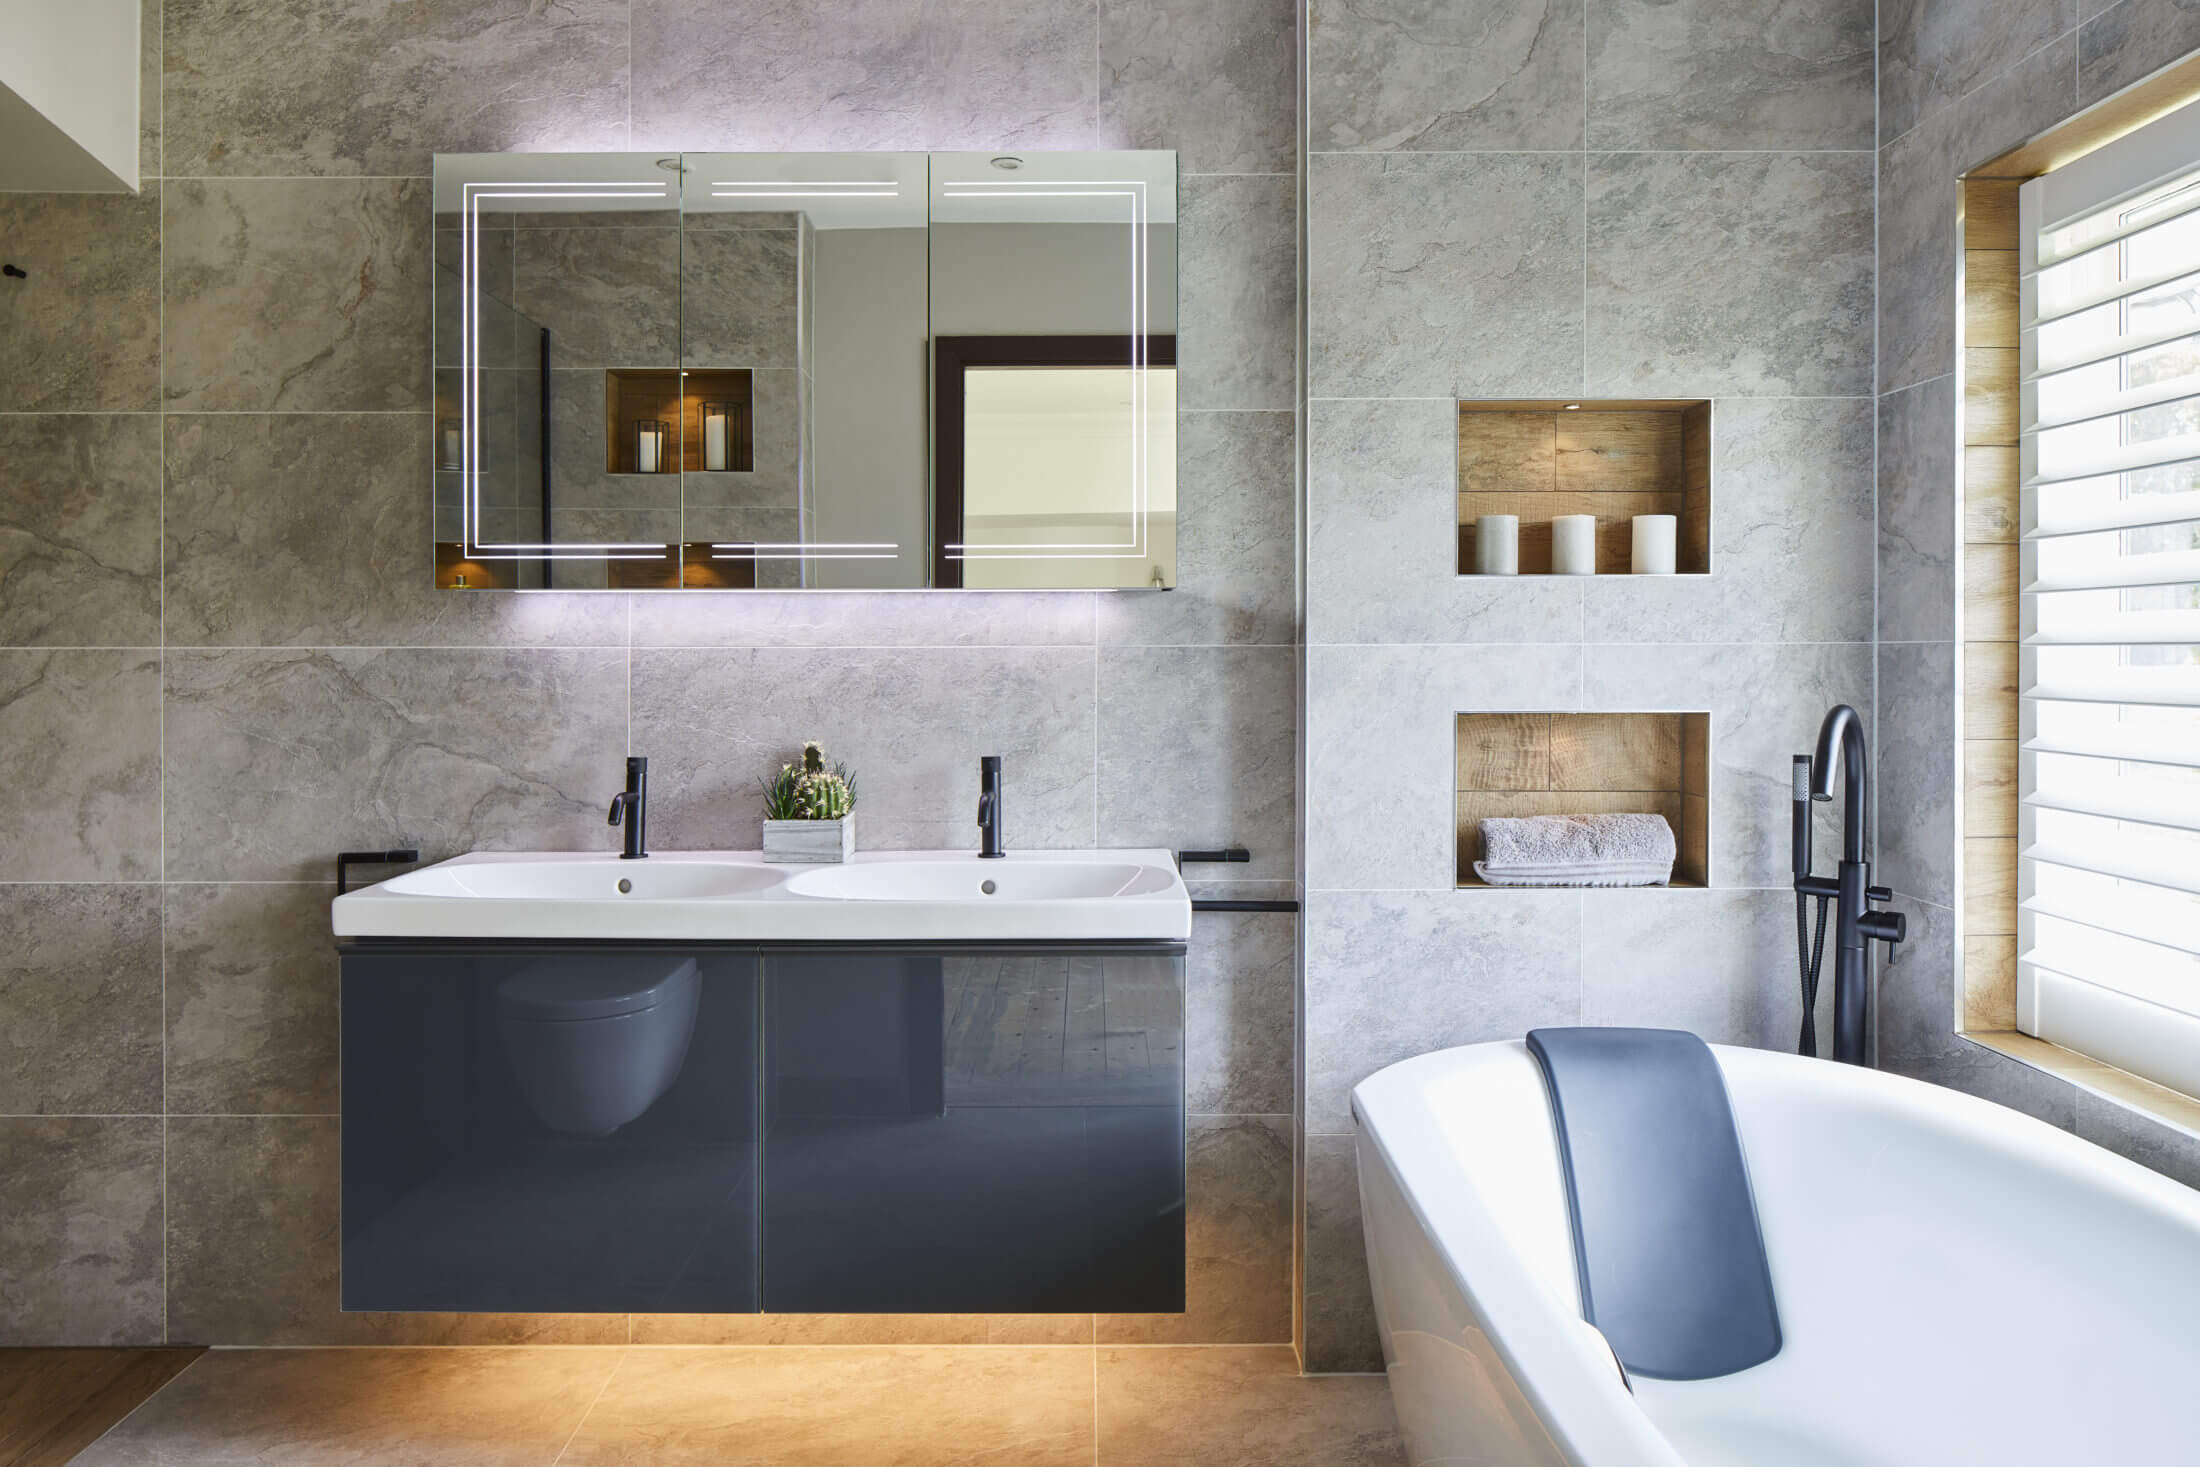 Luxurious Master Ensuite - Esher bath and double basin